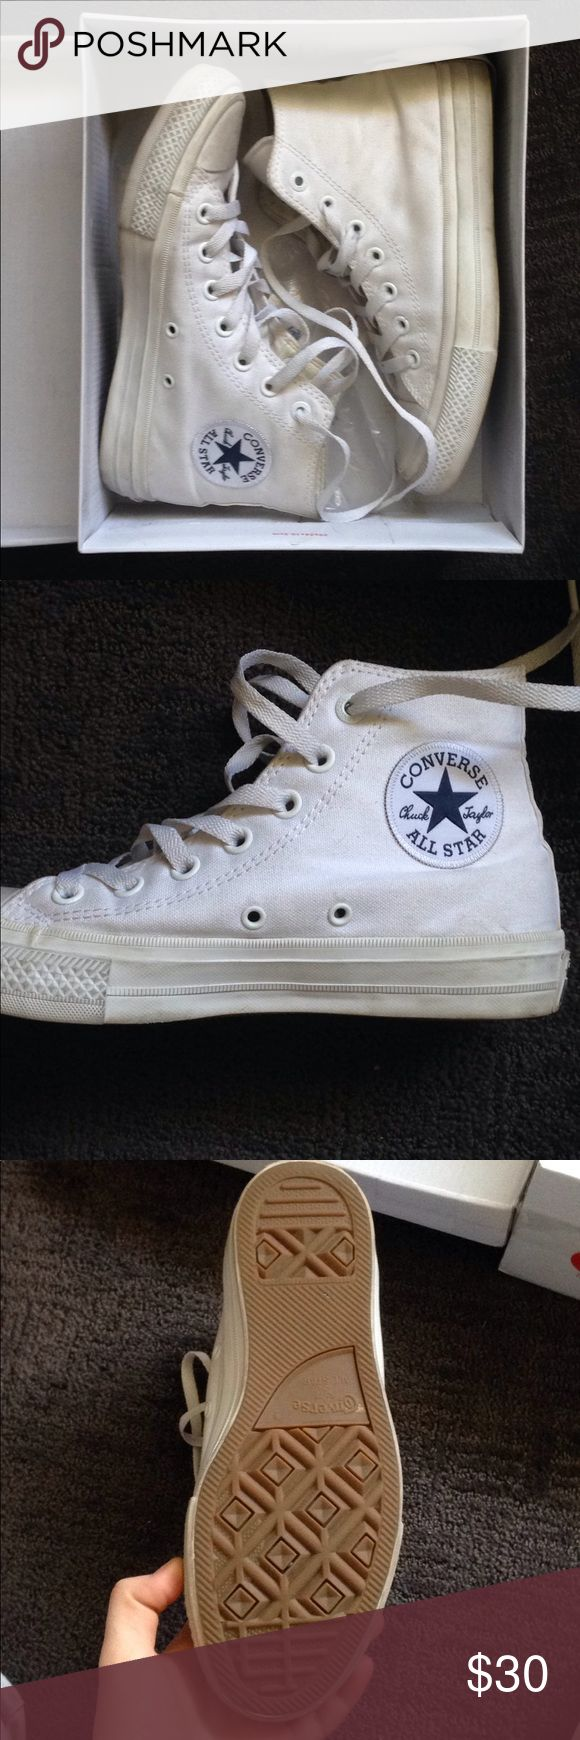 Converse Chuck II High Top White Size 7 Worn once White chuck taylors Soles are in perfect condition Converse Shoes Sneakers